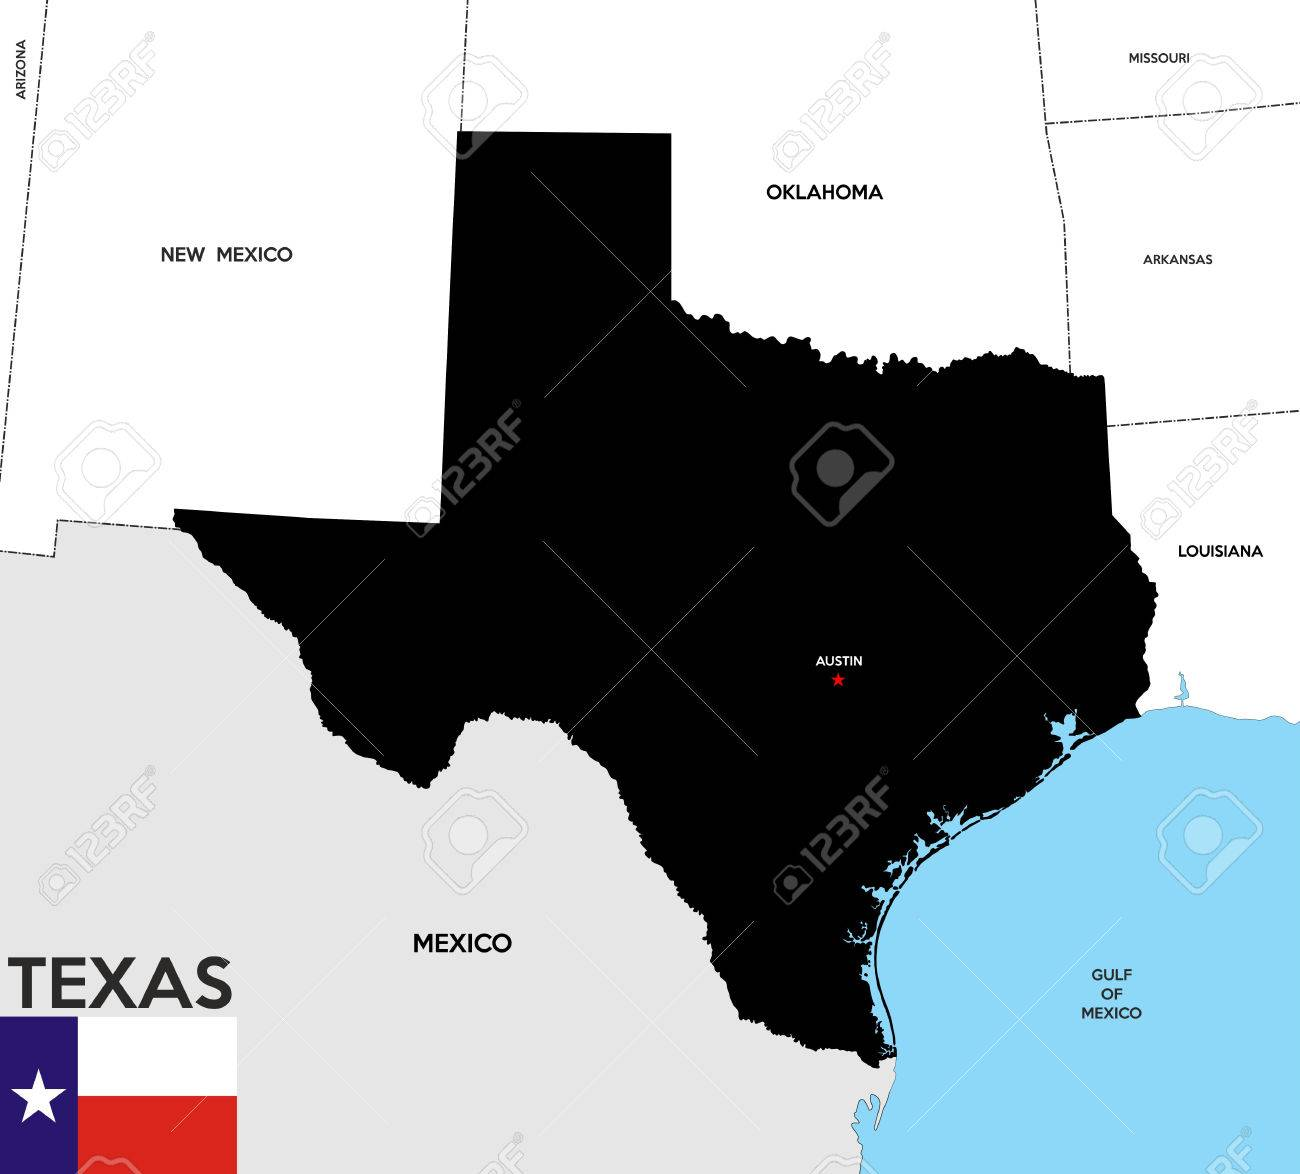 Map Of America Texas.United States Of America Texas Republic Black Map With Flag